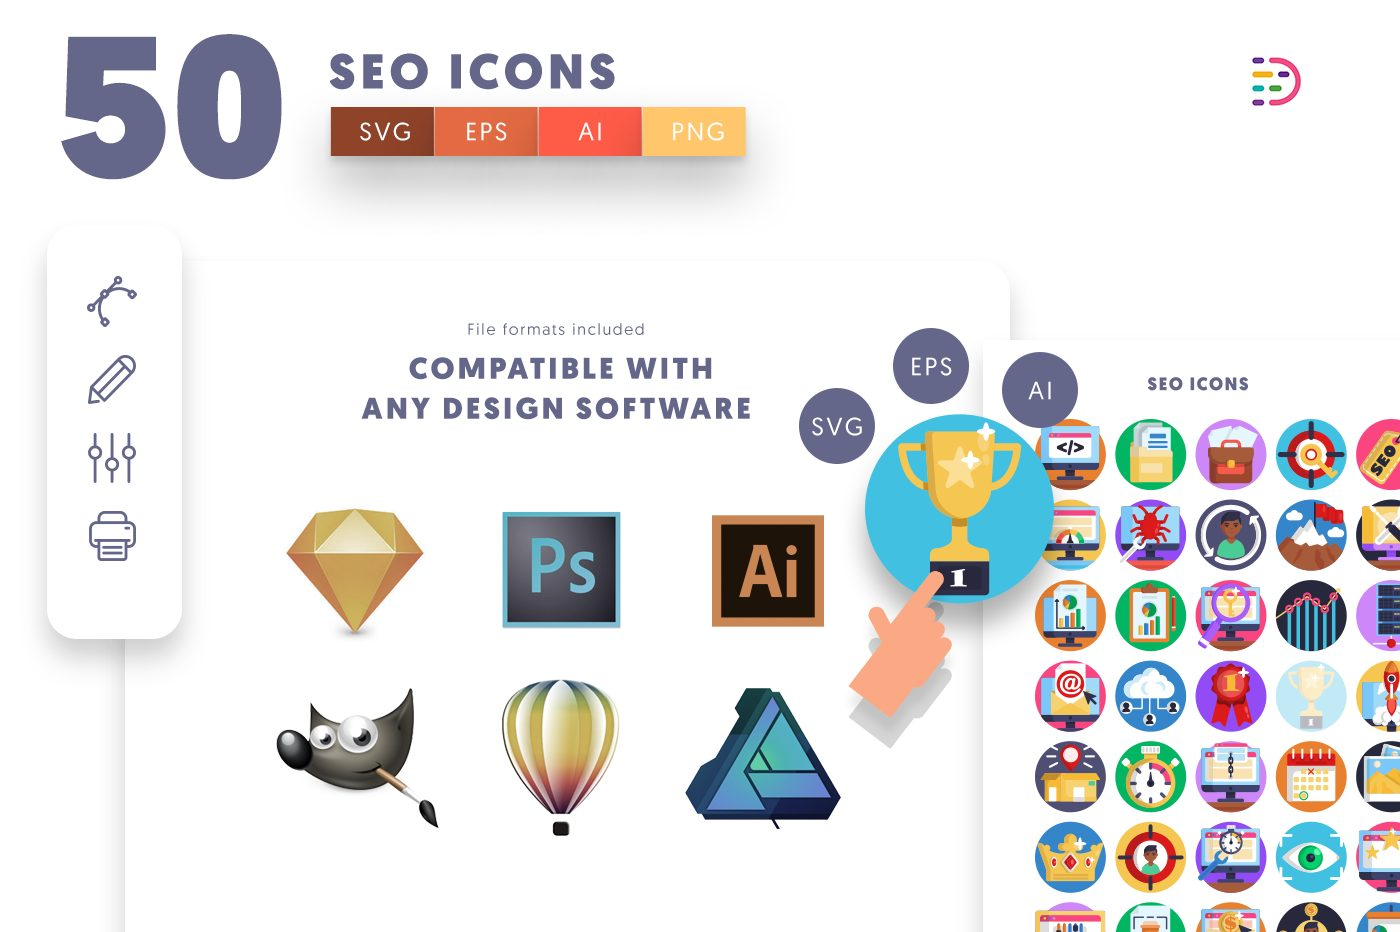 full vector 50 SEO Icons EPS, SVG, PNG